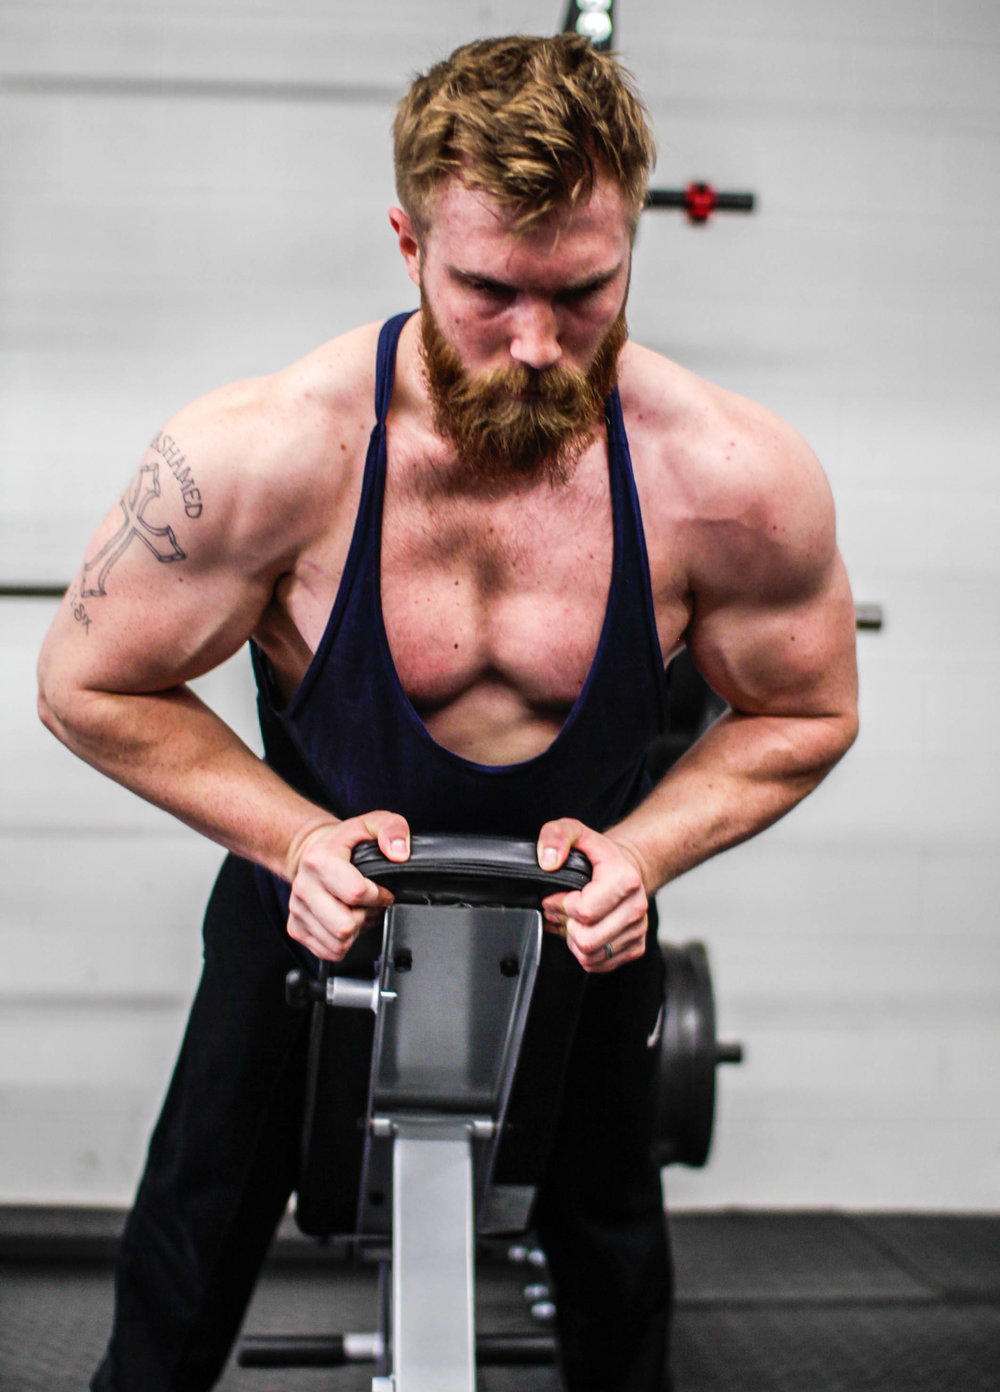 Powerlifting and powerbuilding coach, Mike Sell